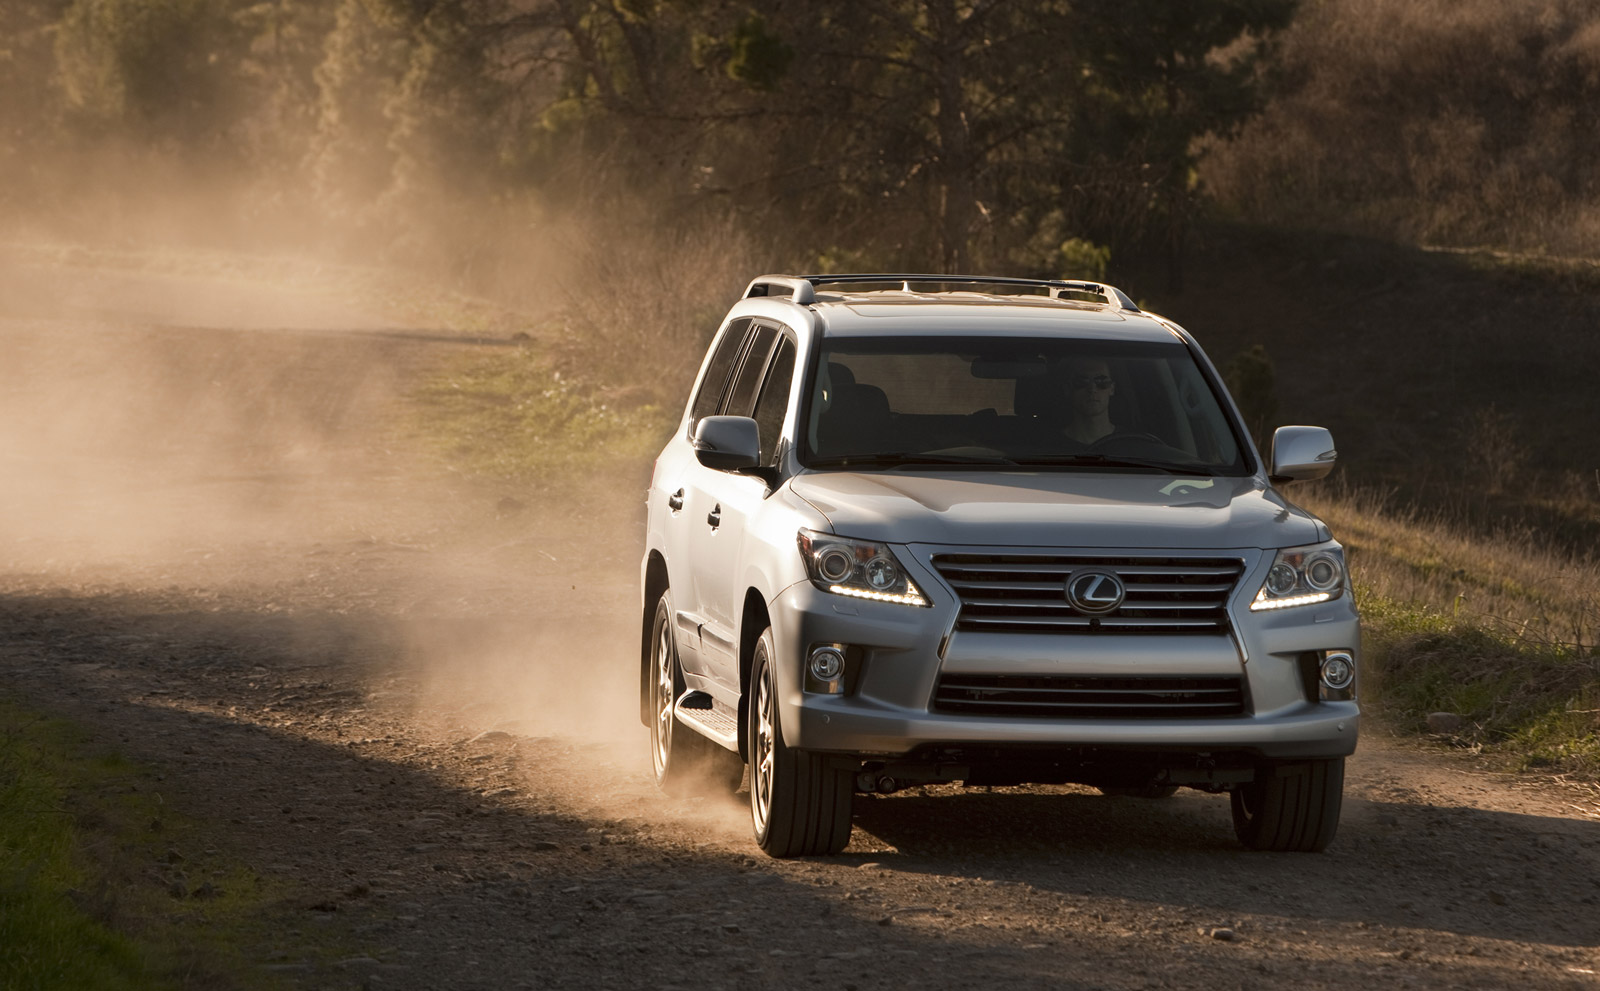 2019 Lexus LX 570 photo - 4